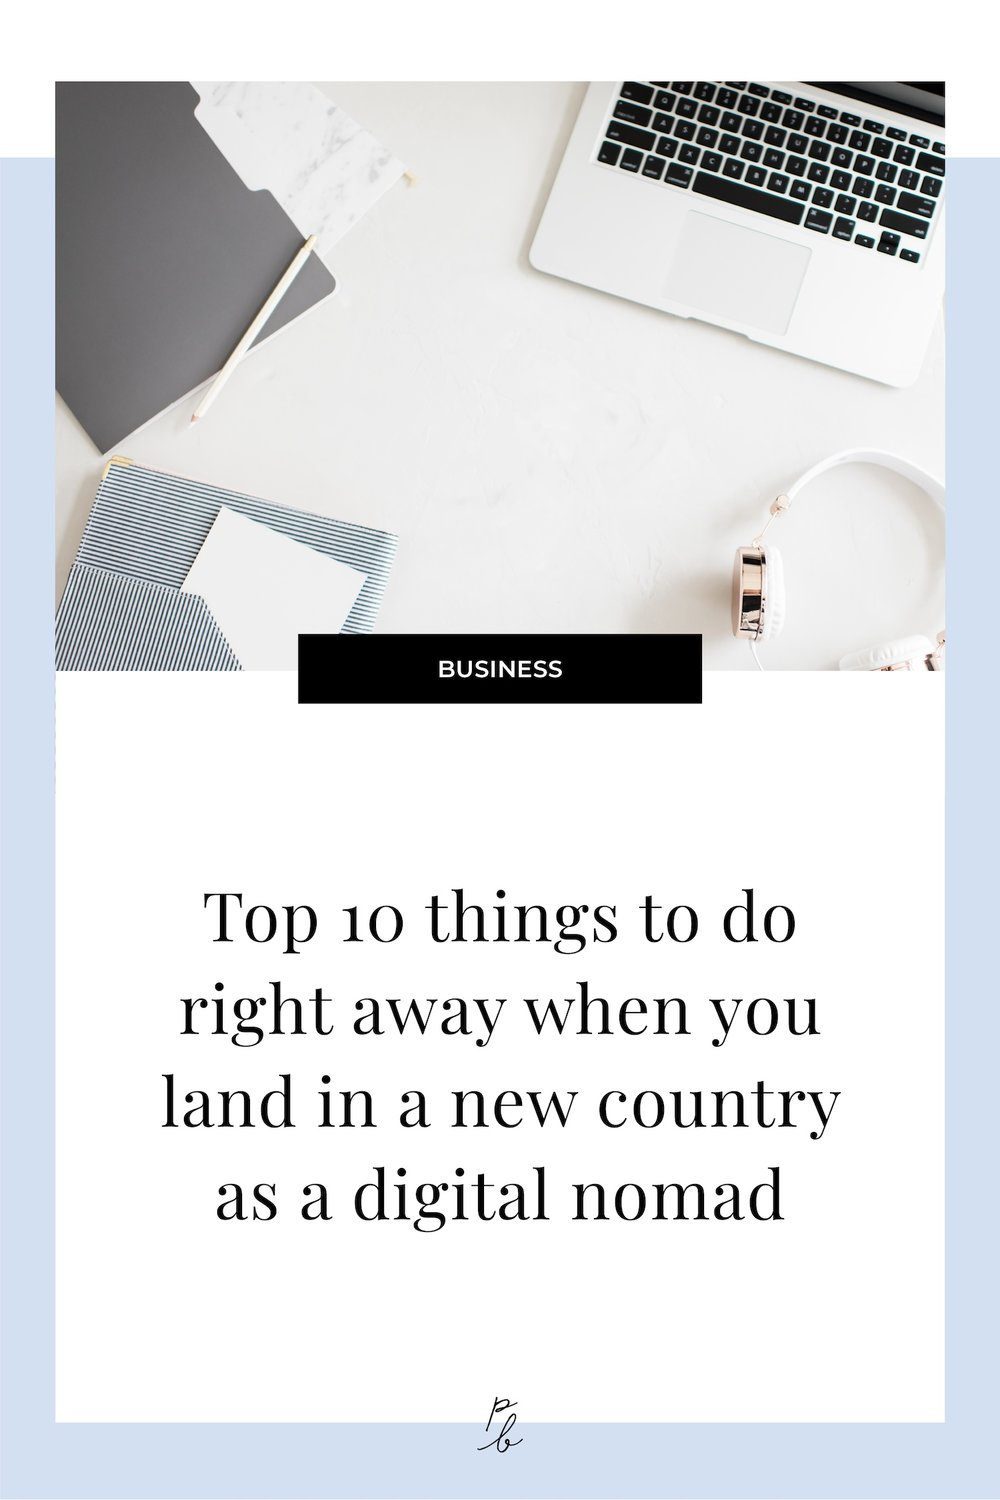 Top 10 things to do right away when you land in a new country as a digital nomad.jpg